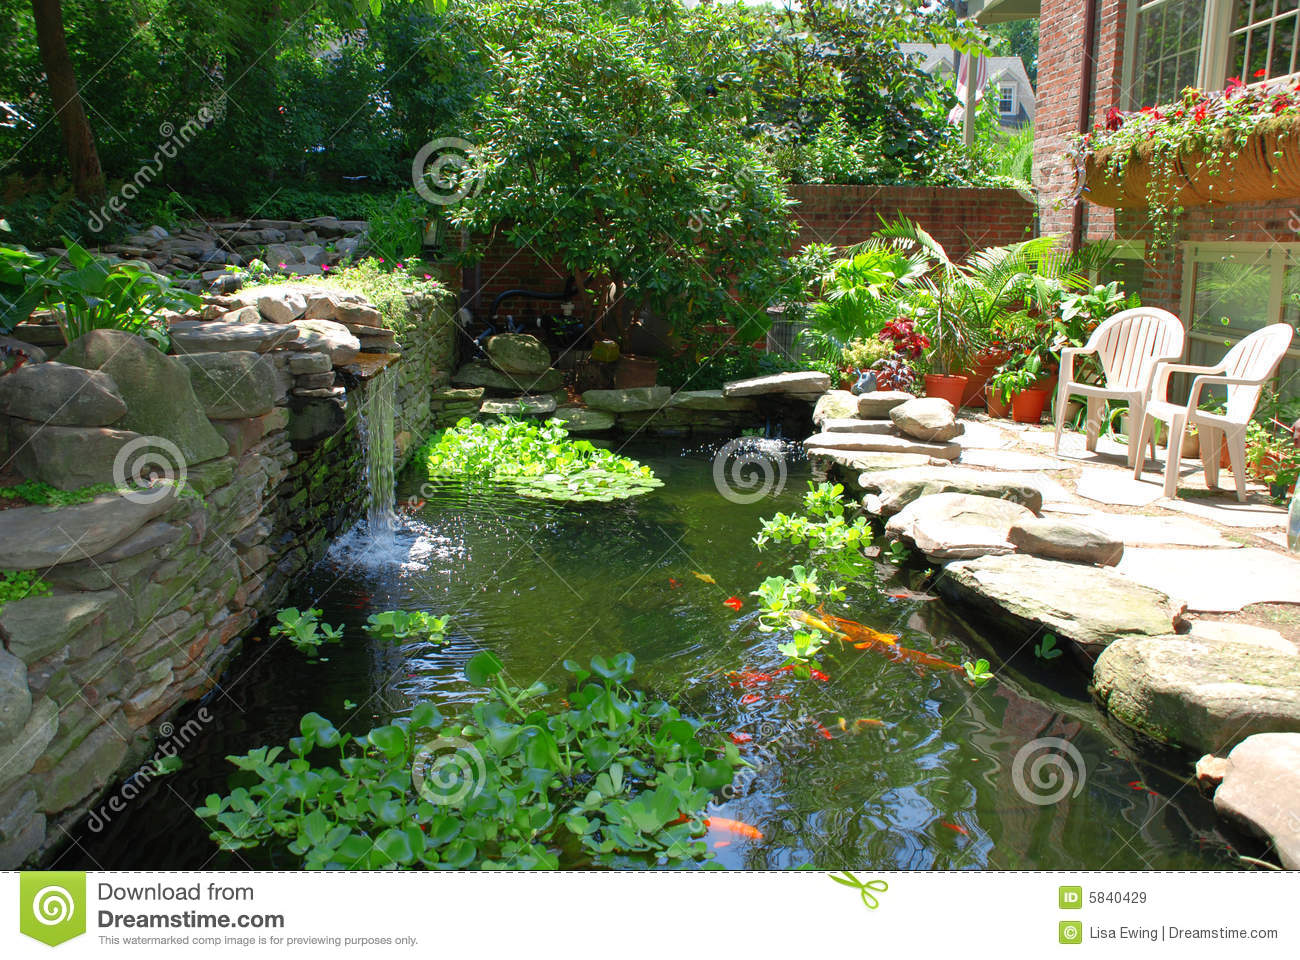 Fish pond royalty free stock images image 5840429 for Garden pond unlimited